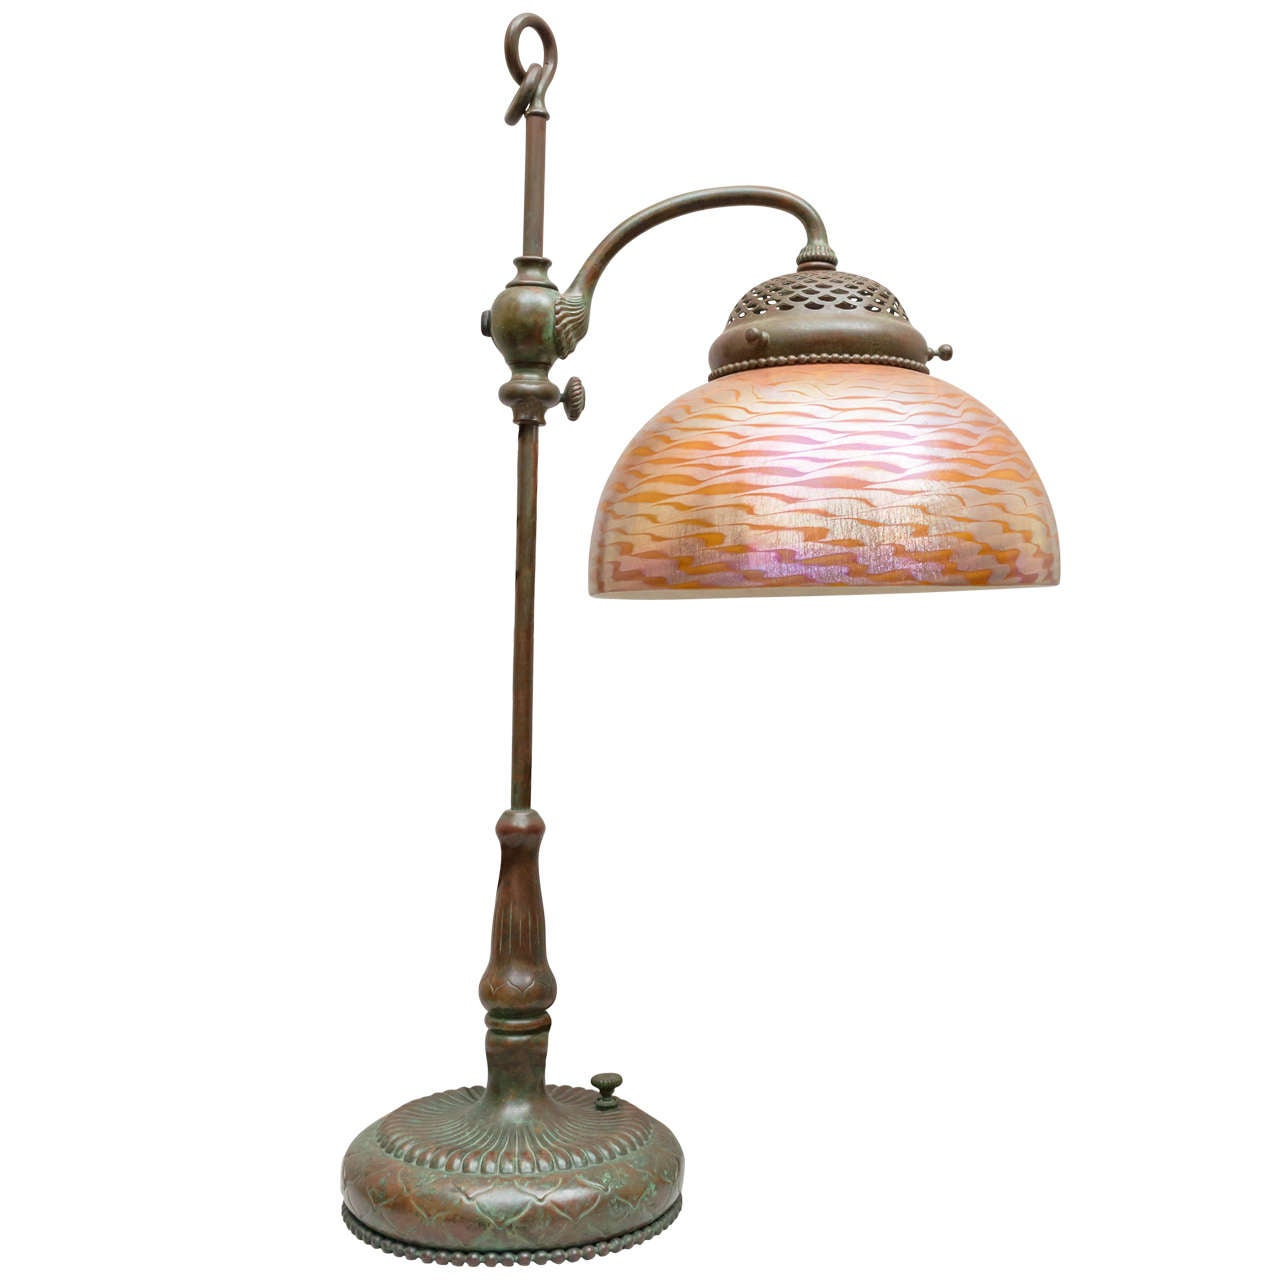 Original Lamps tiffany studios desk lamp with original glass shade at 1stdibs